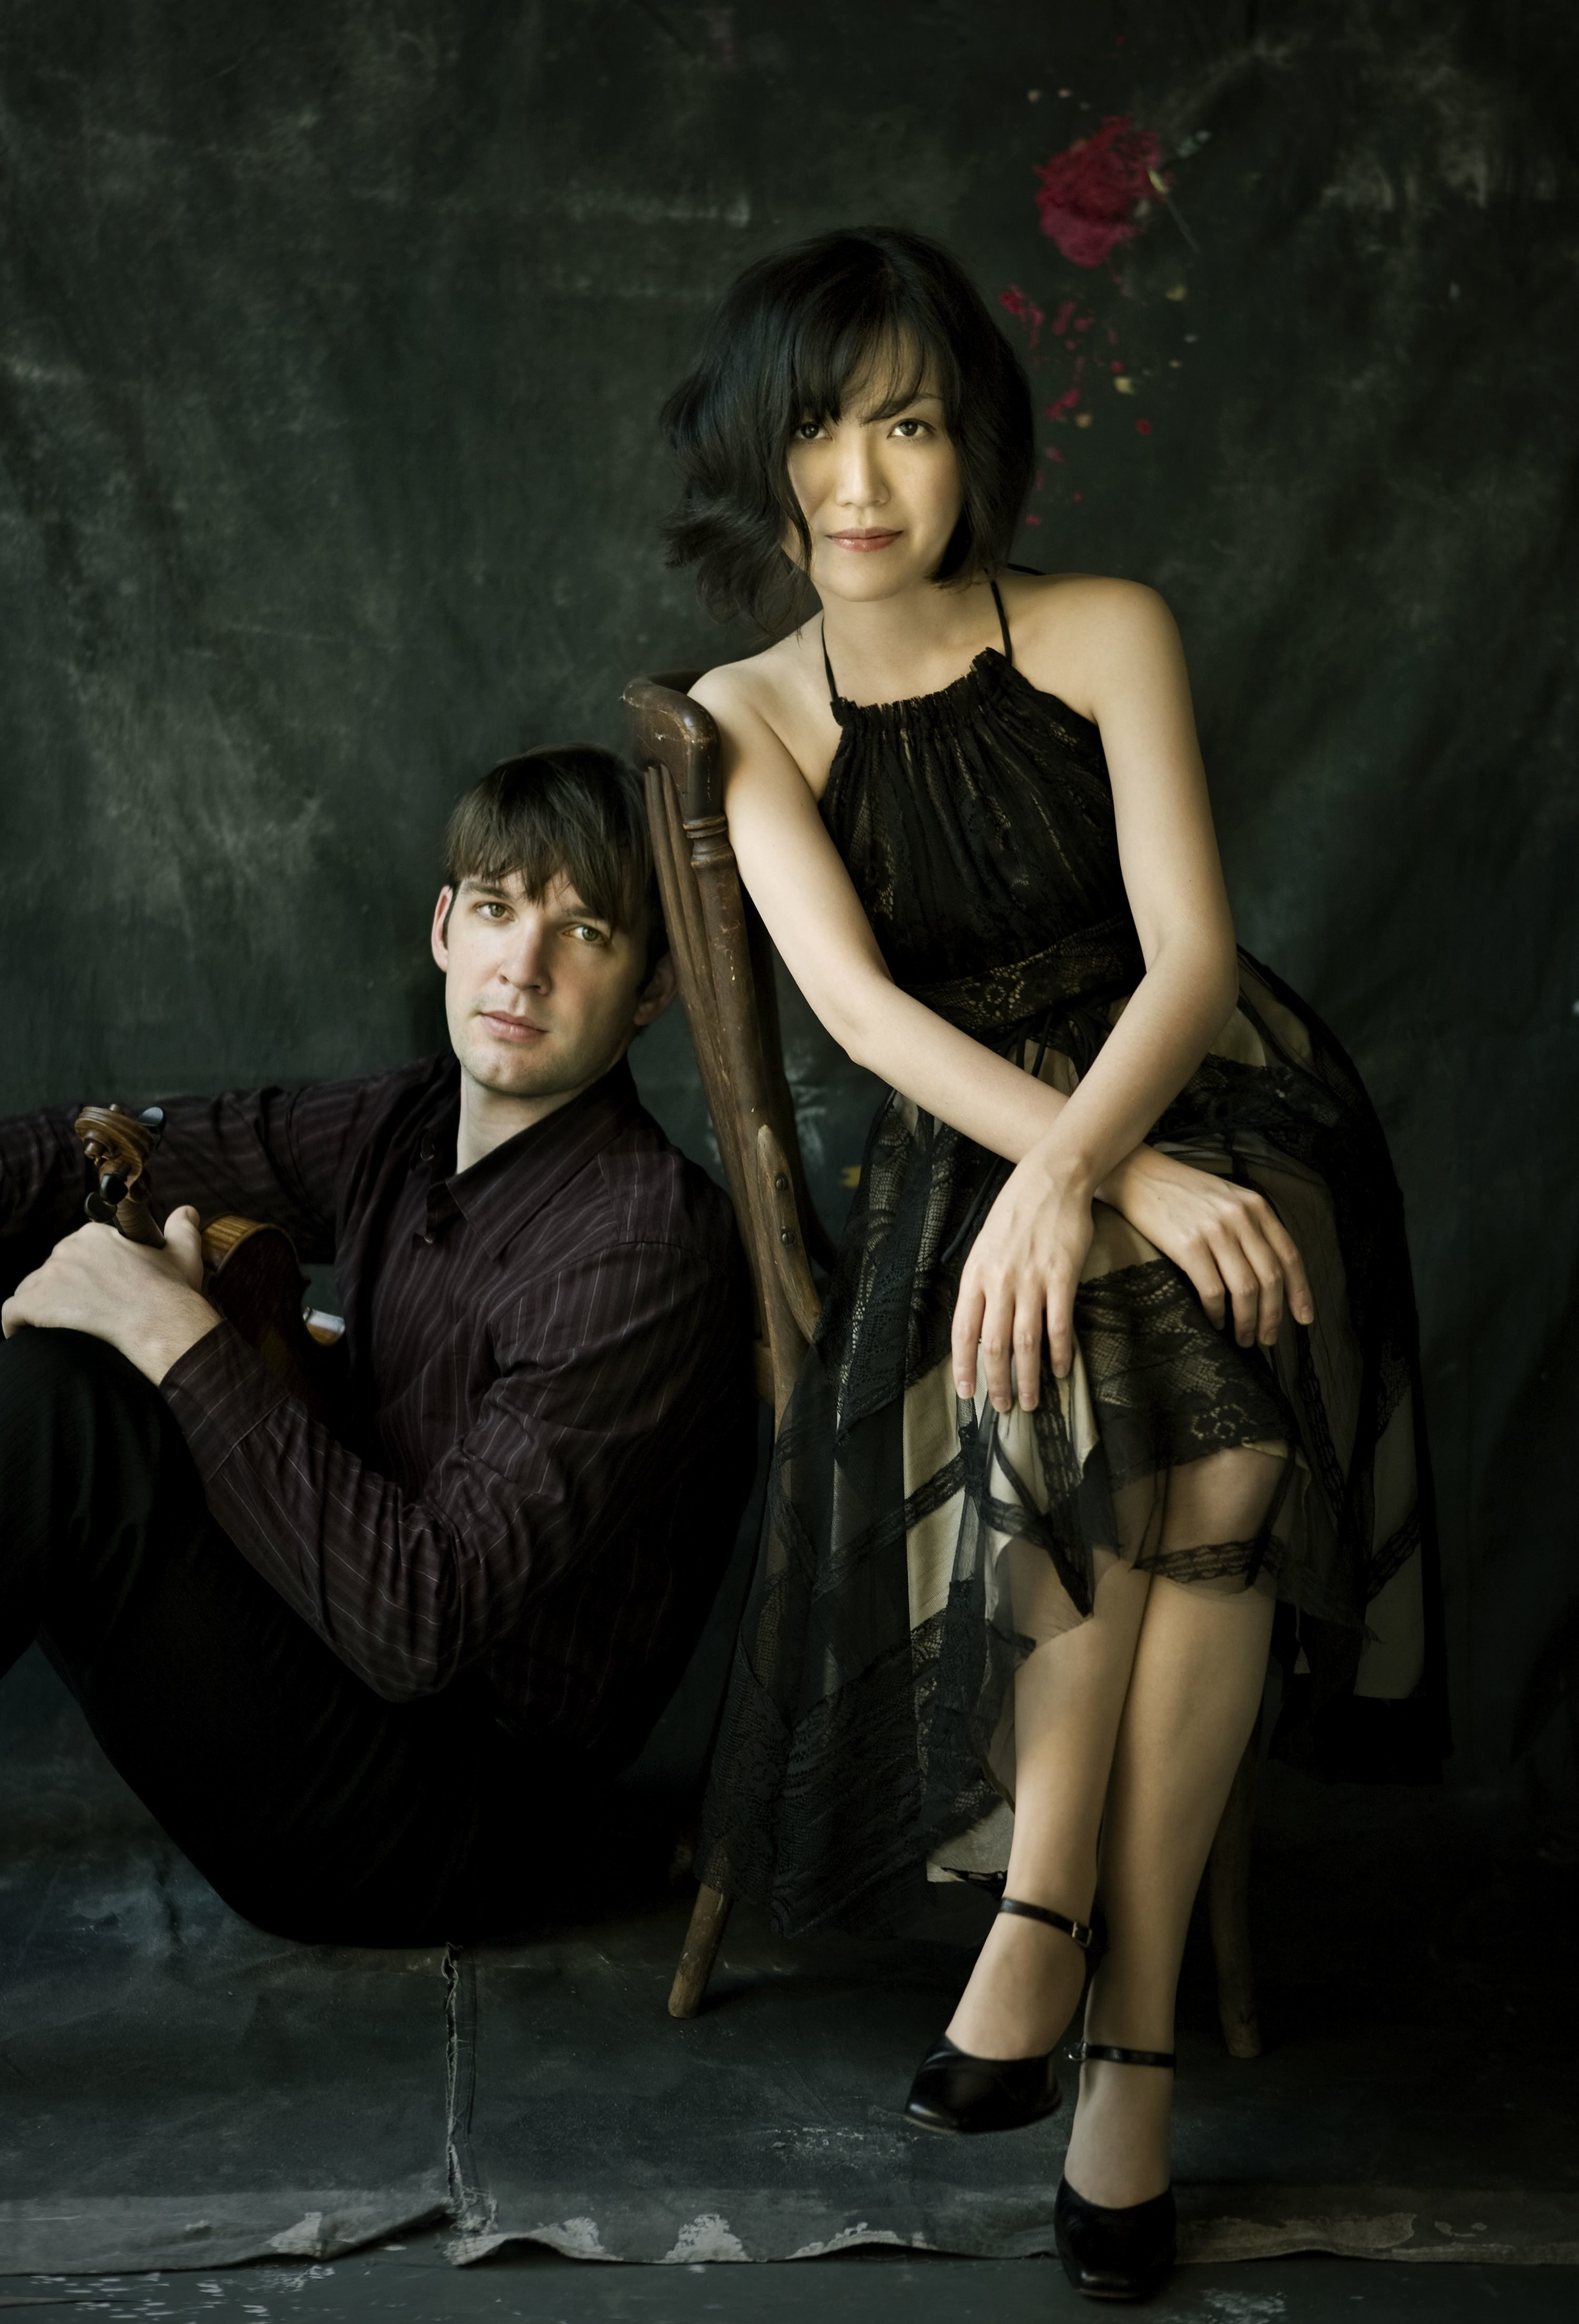 [Classical Conversations Presents Duo Prism]